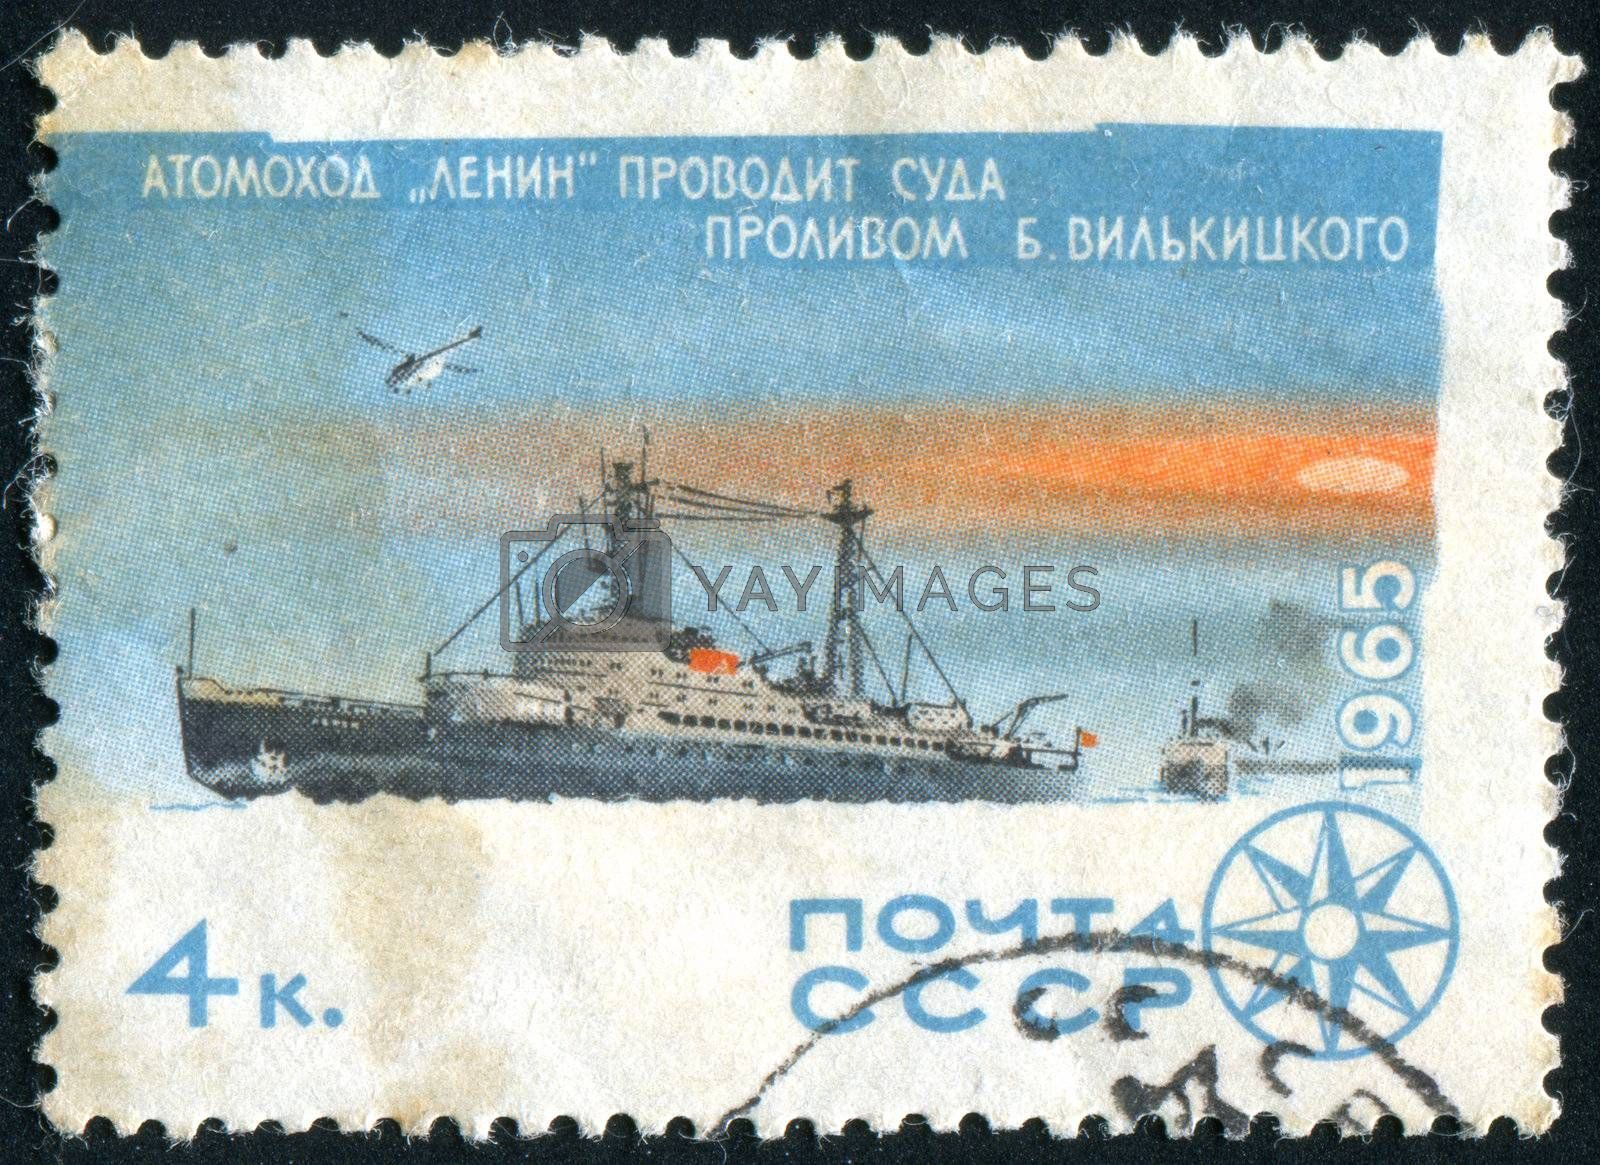 RUSSIA - CIRCA 1965: stamp printed by Russia, shows Atomic Icebreaker �Lenin�, circa 1965.